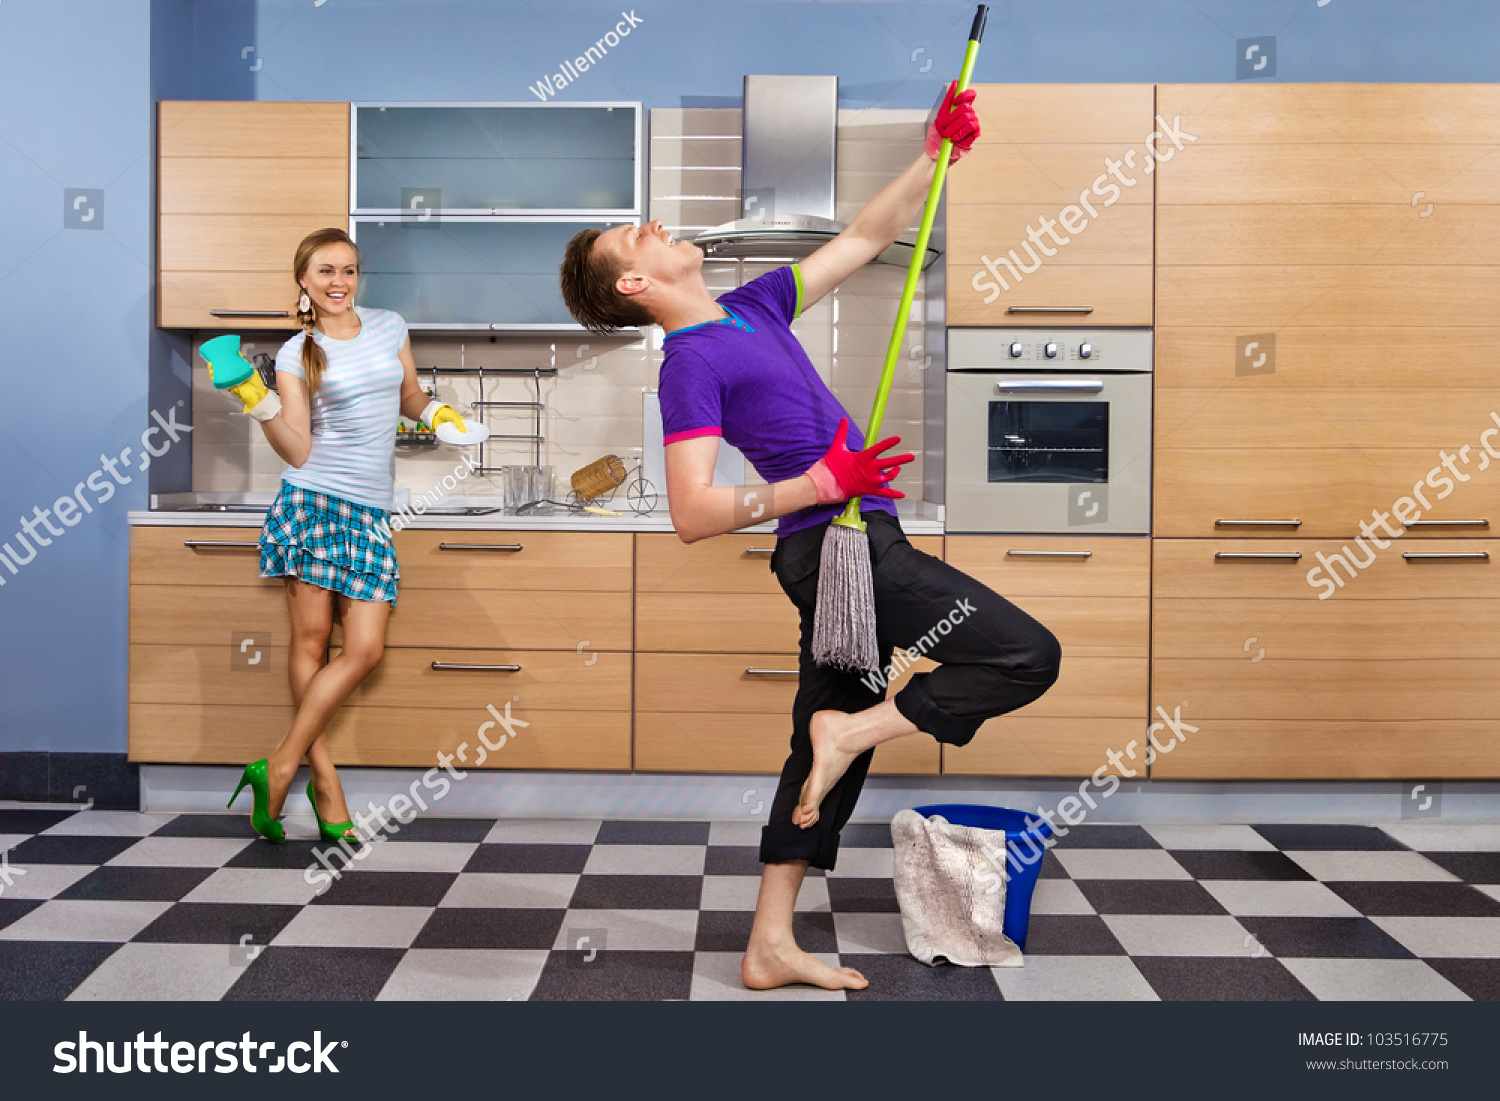 Kitchen Floor Mops Modern Kitchen Woman Sponge Smiling Young Stock Photo 103516775